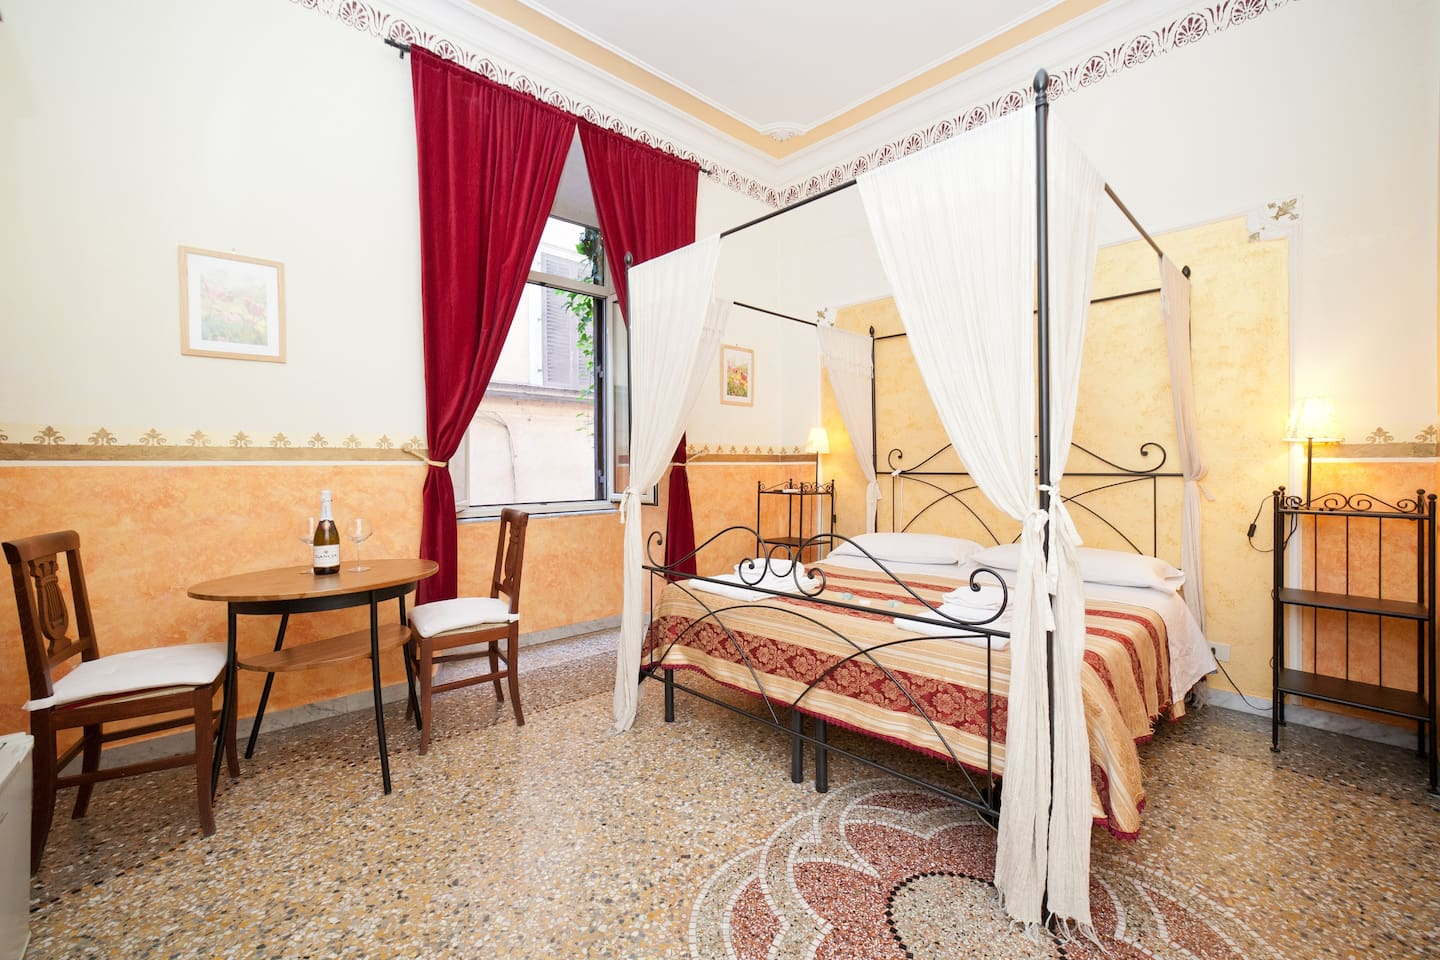 Baldassini B&B